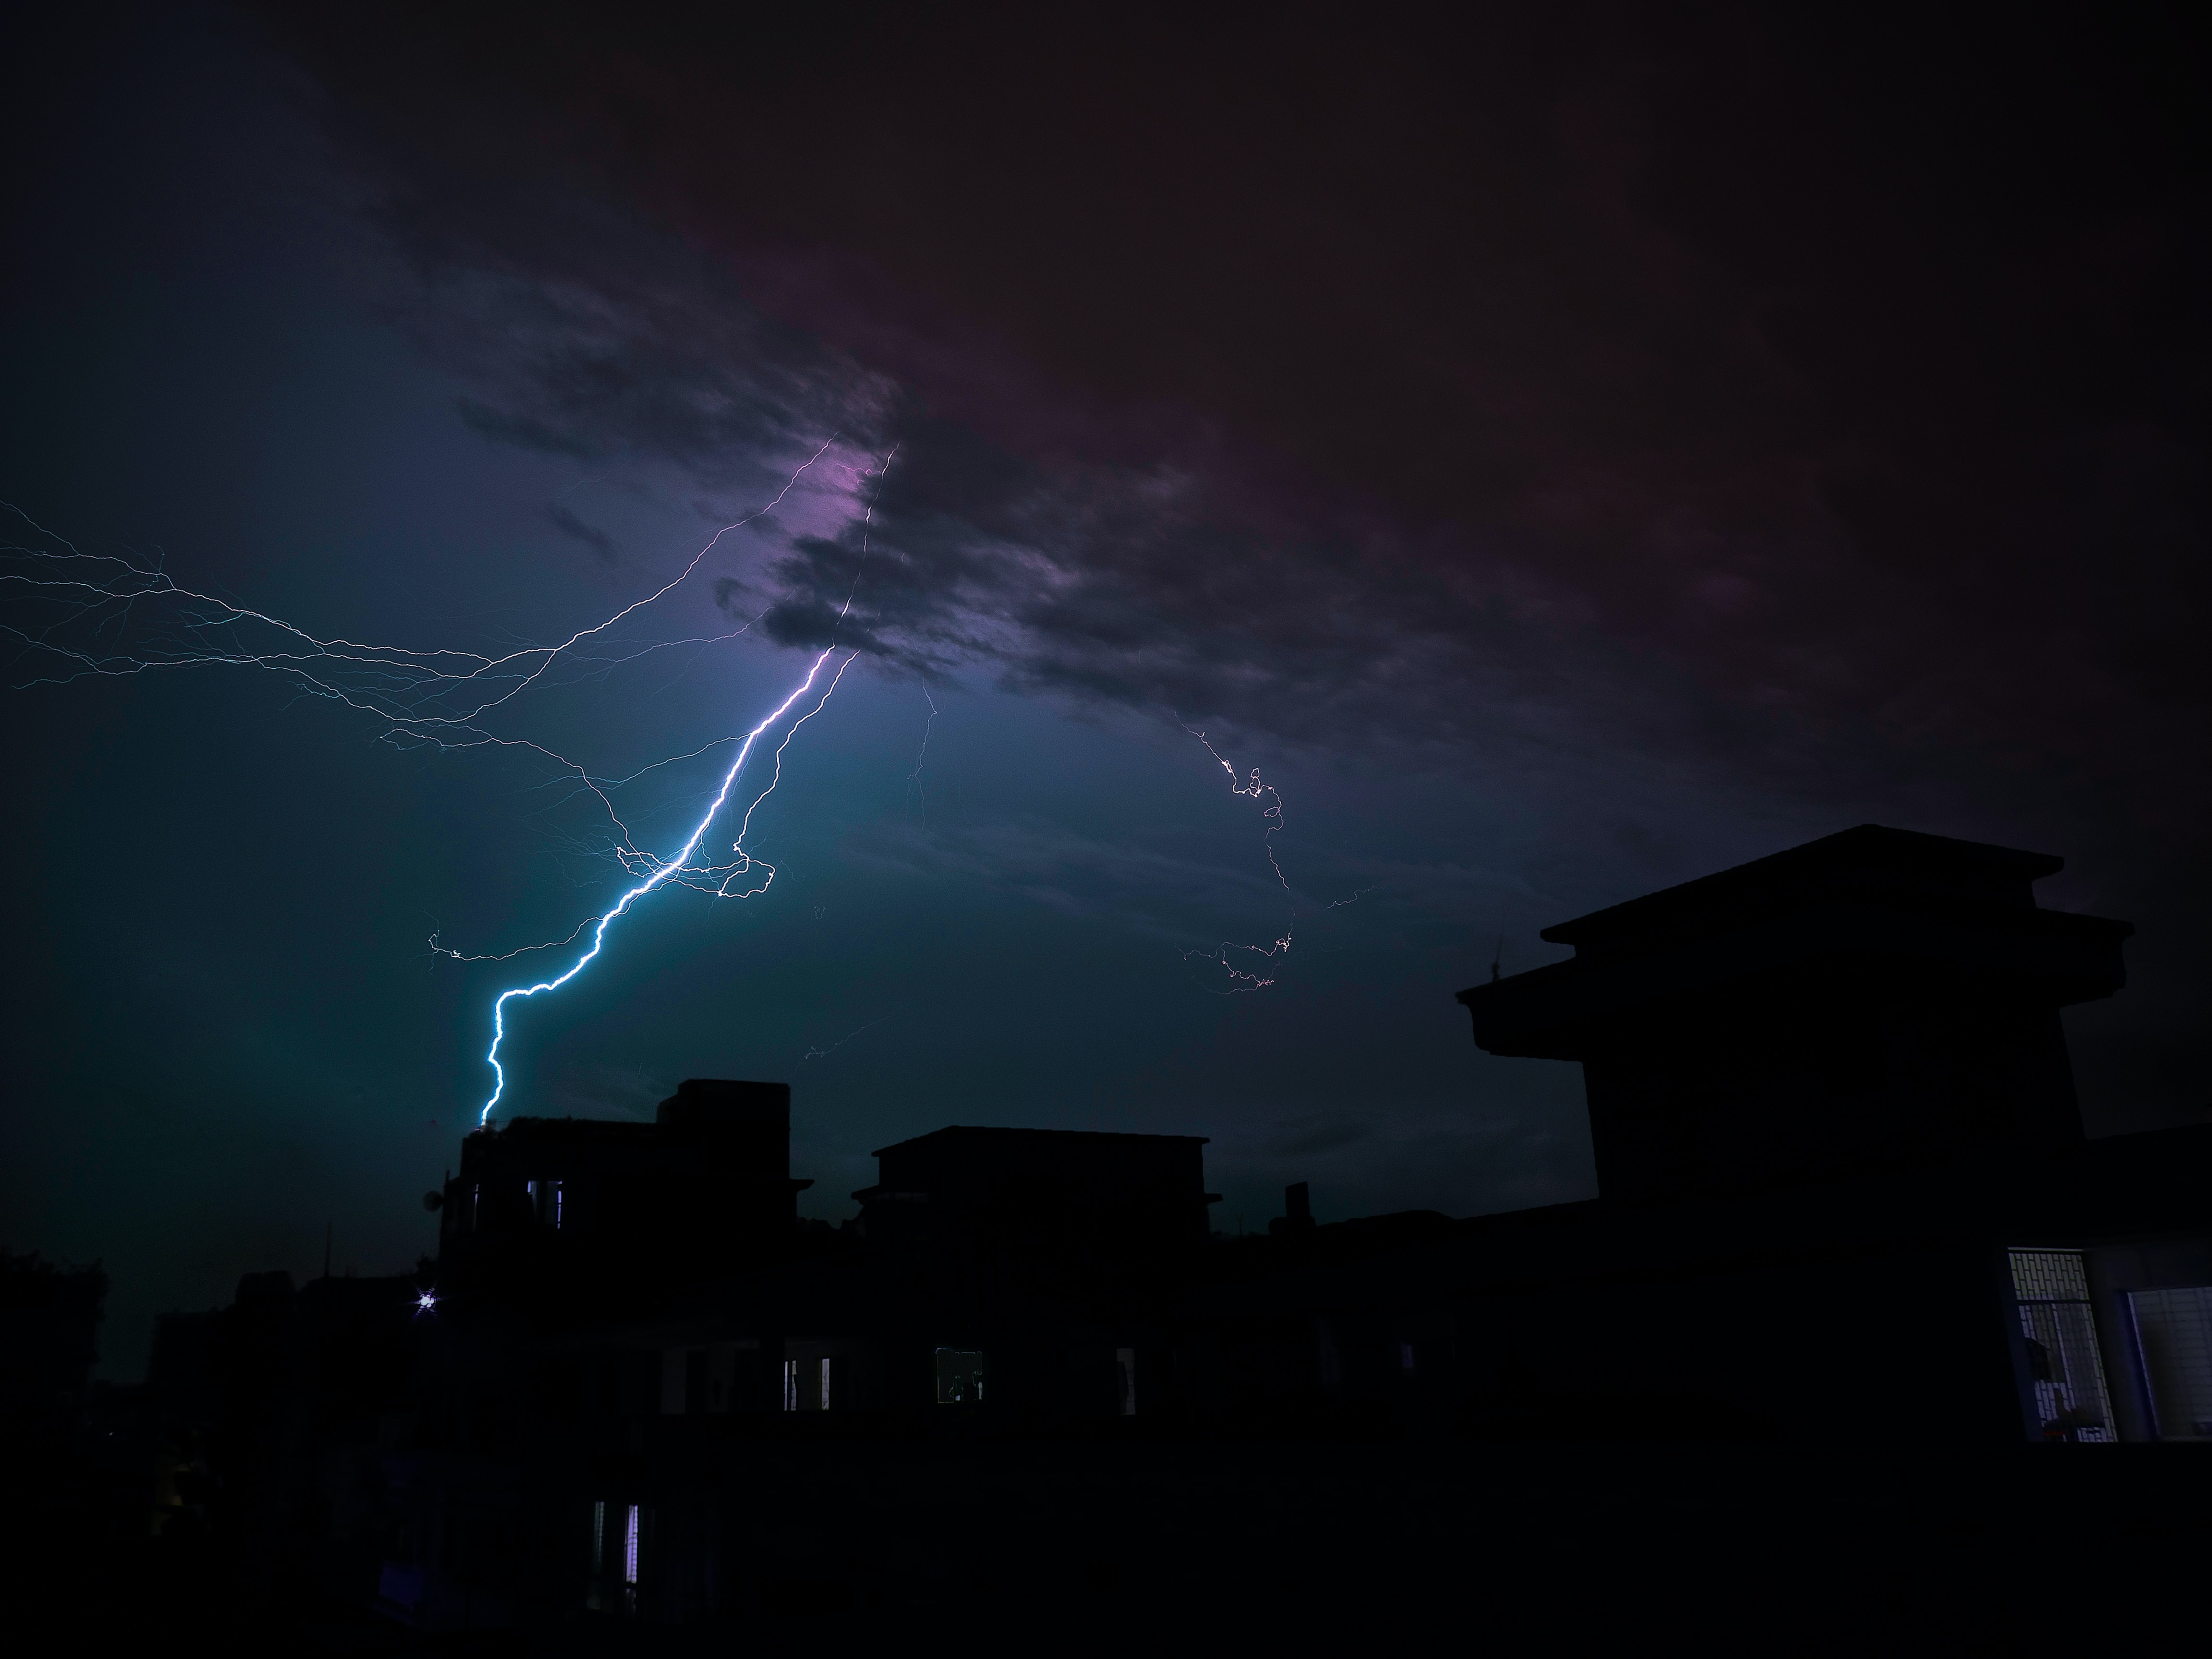 low light photography of thunder